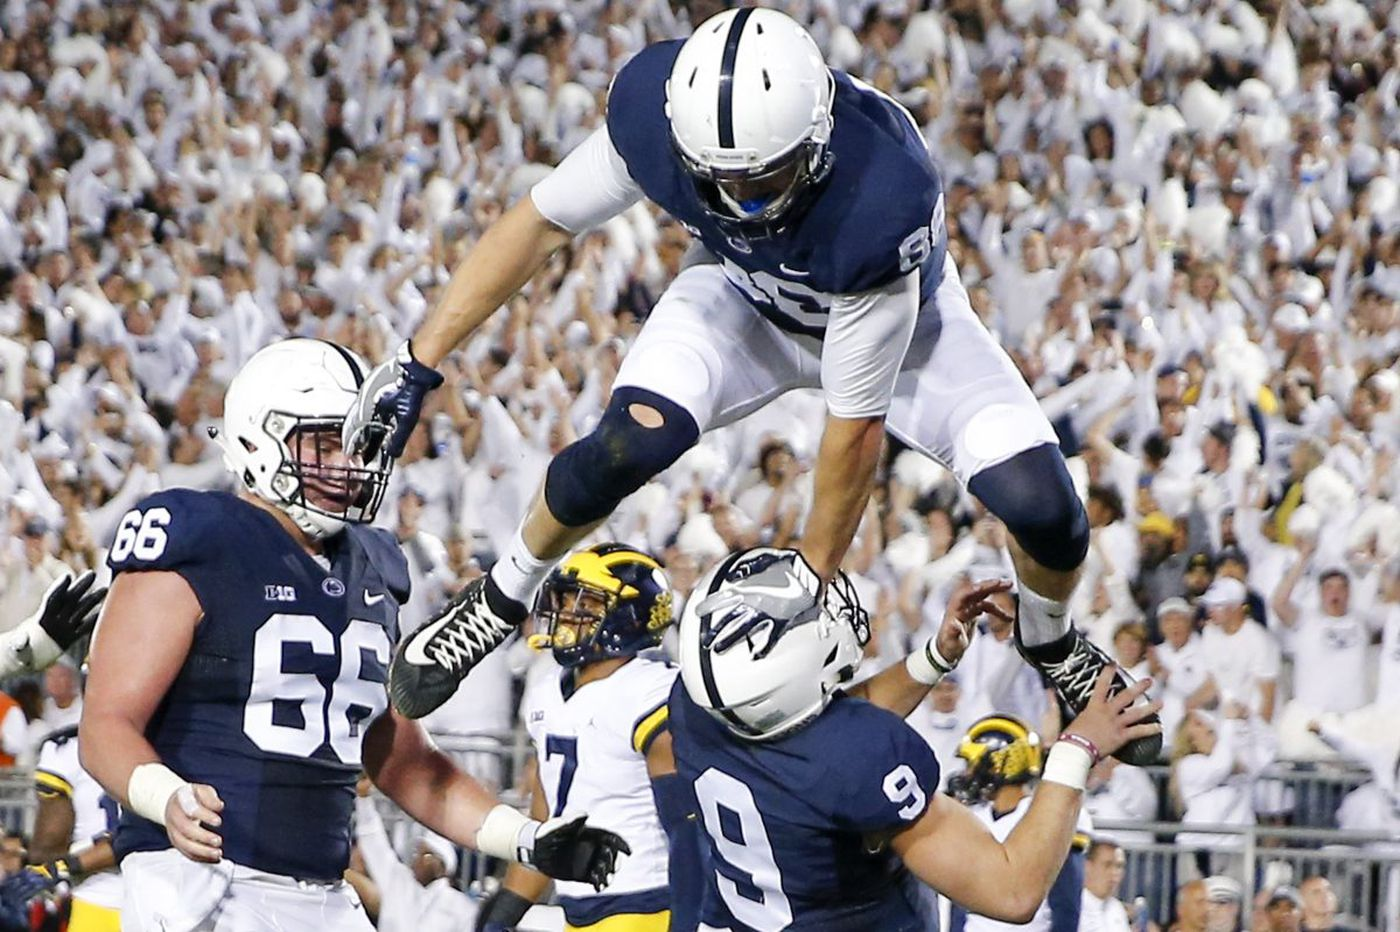 Penn State fans are allowed to dream after big win over Michigan